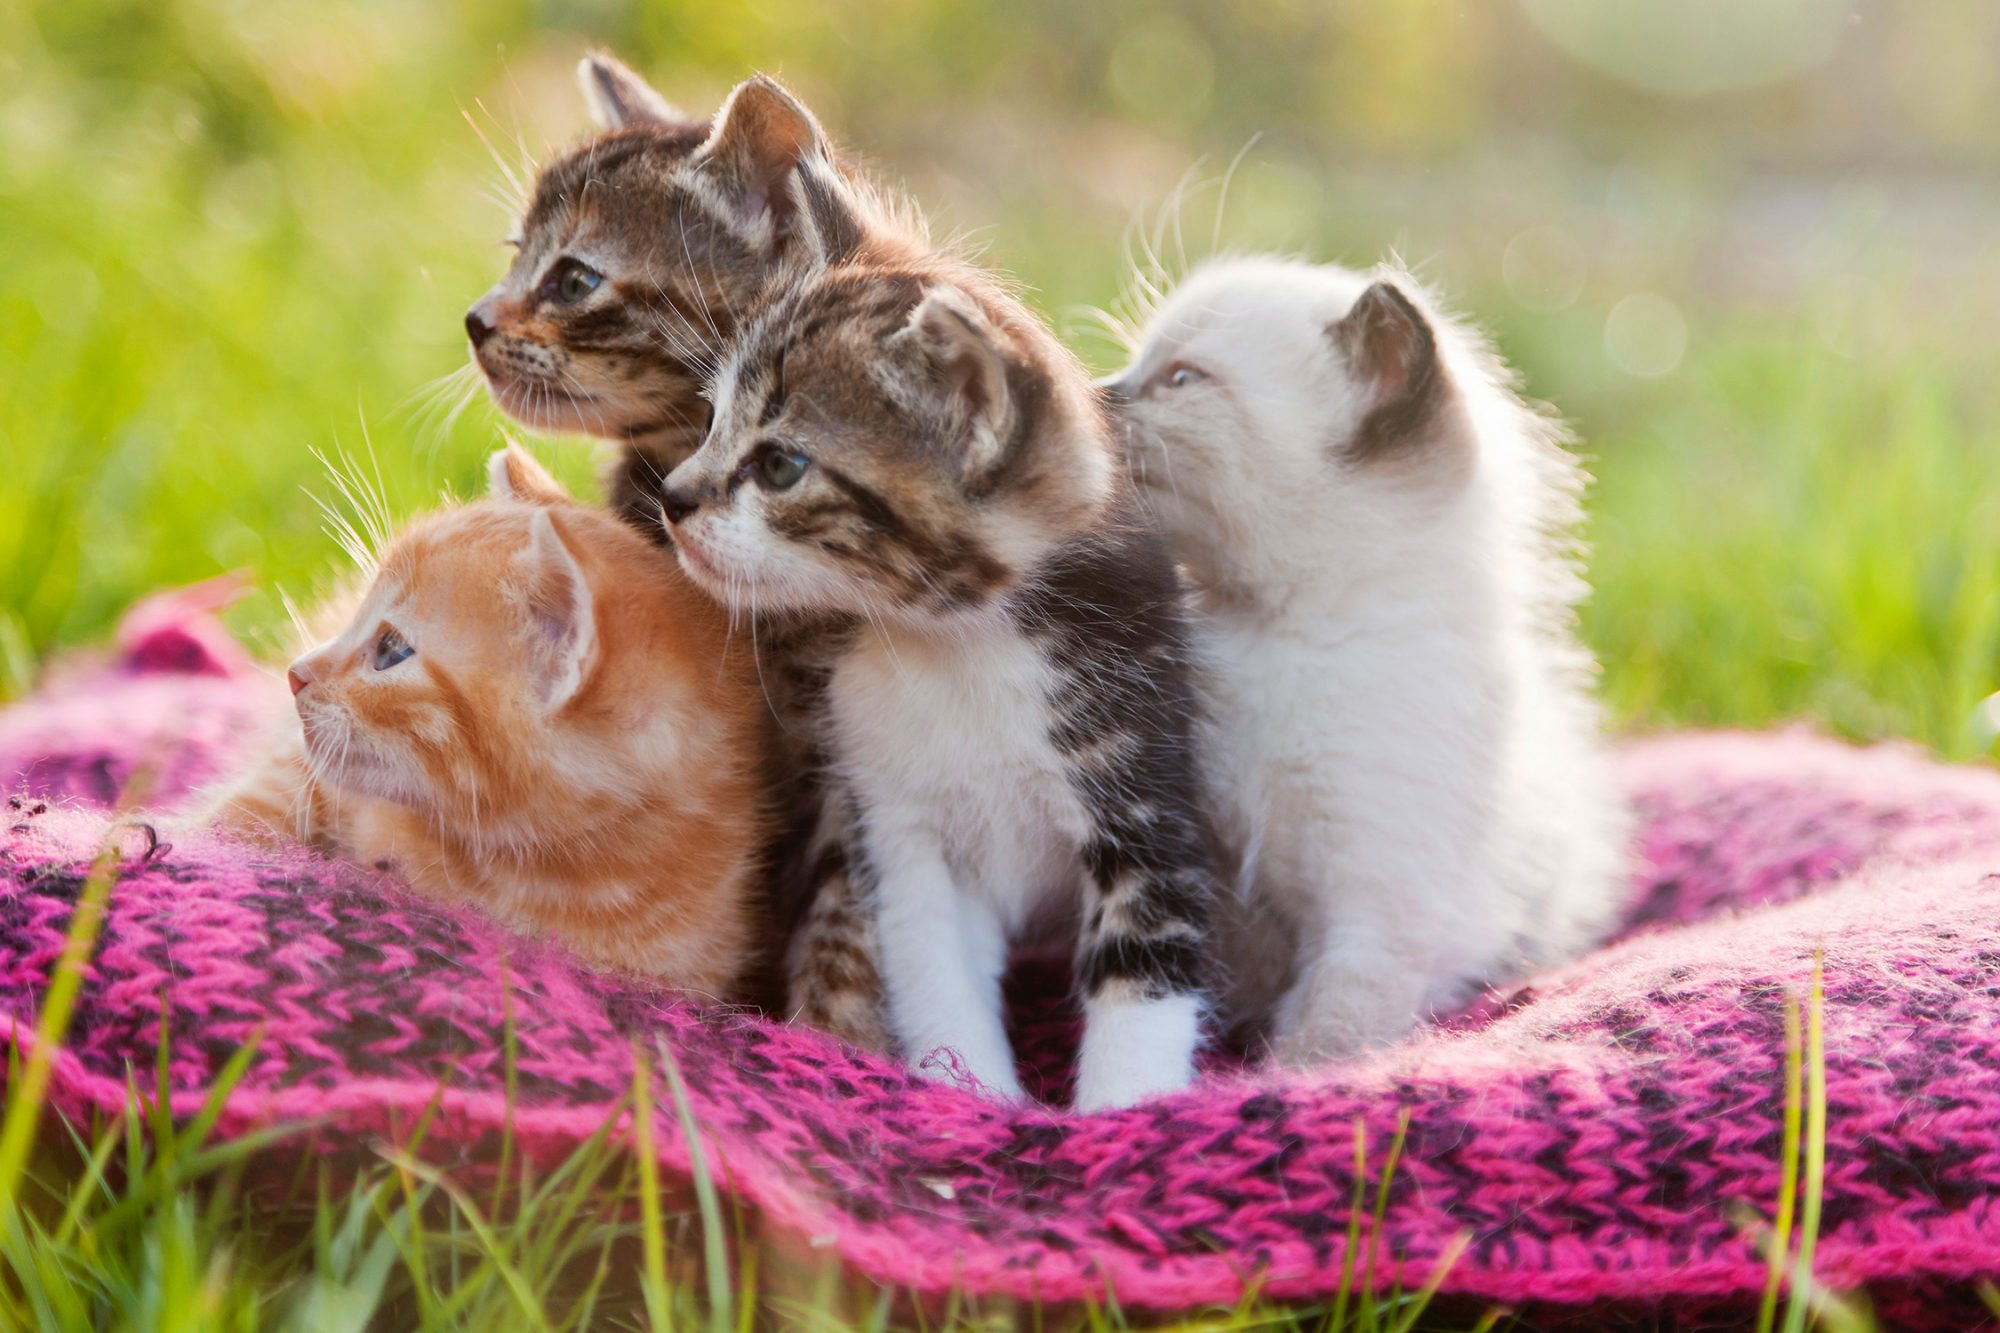 Four kittens in a pink cushion on the grass looking in the same direction.